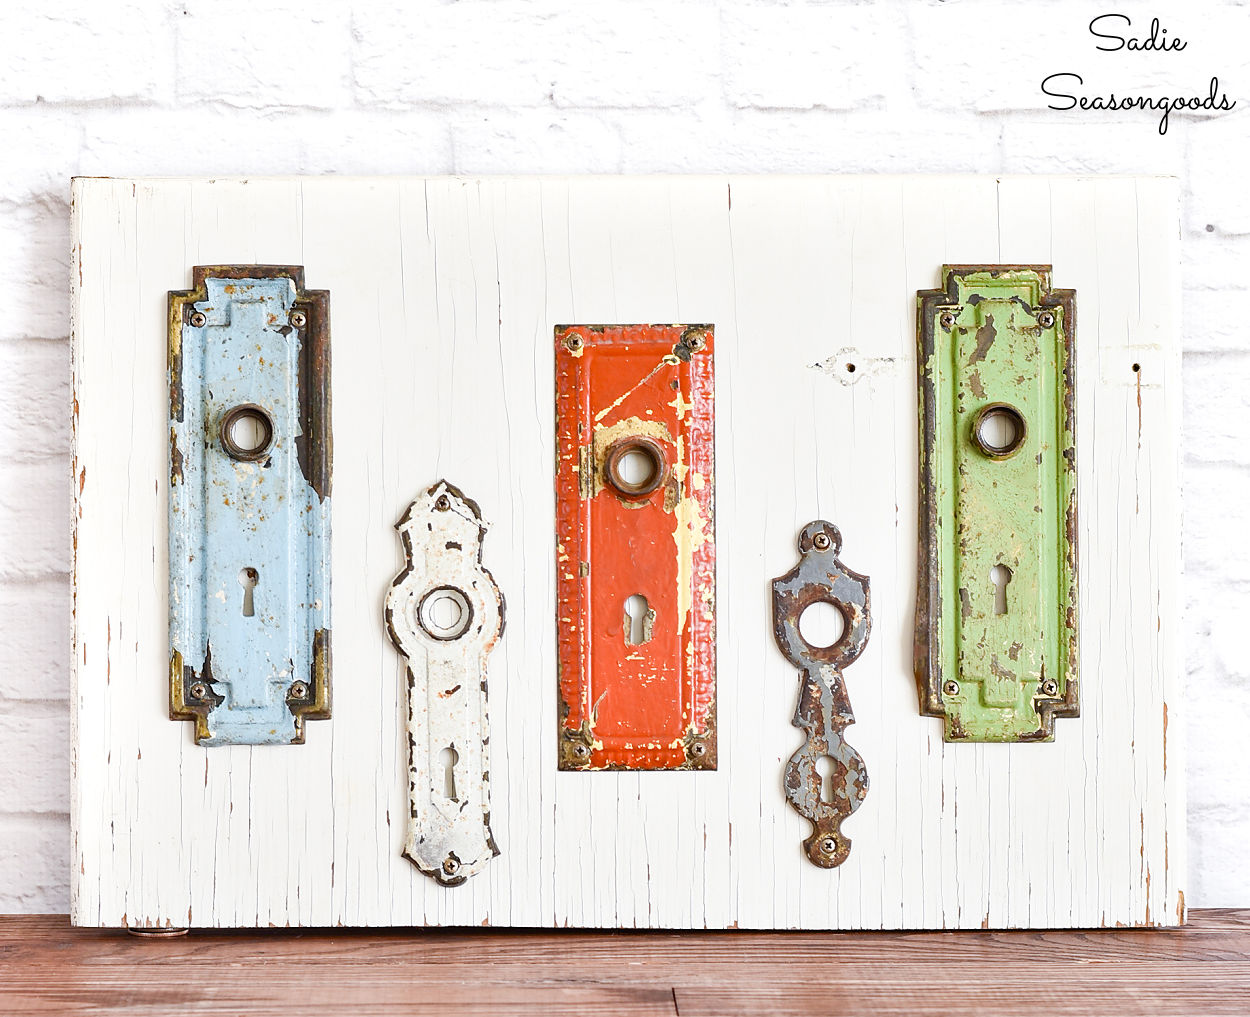 keyhole covers as quirky art